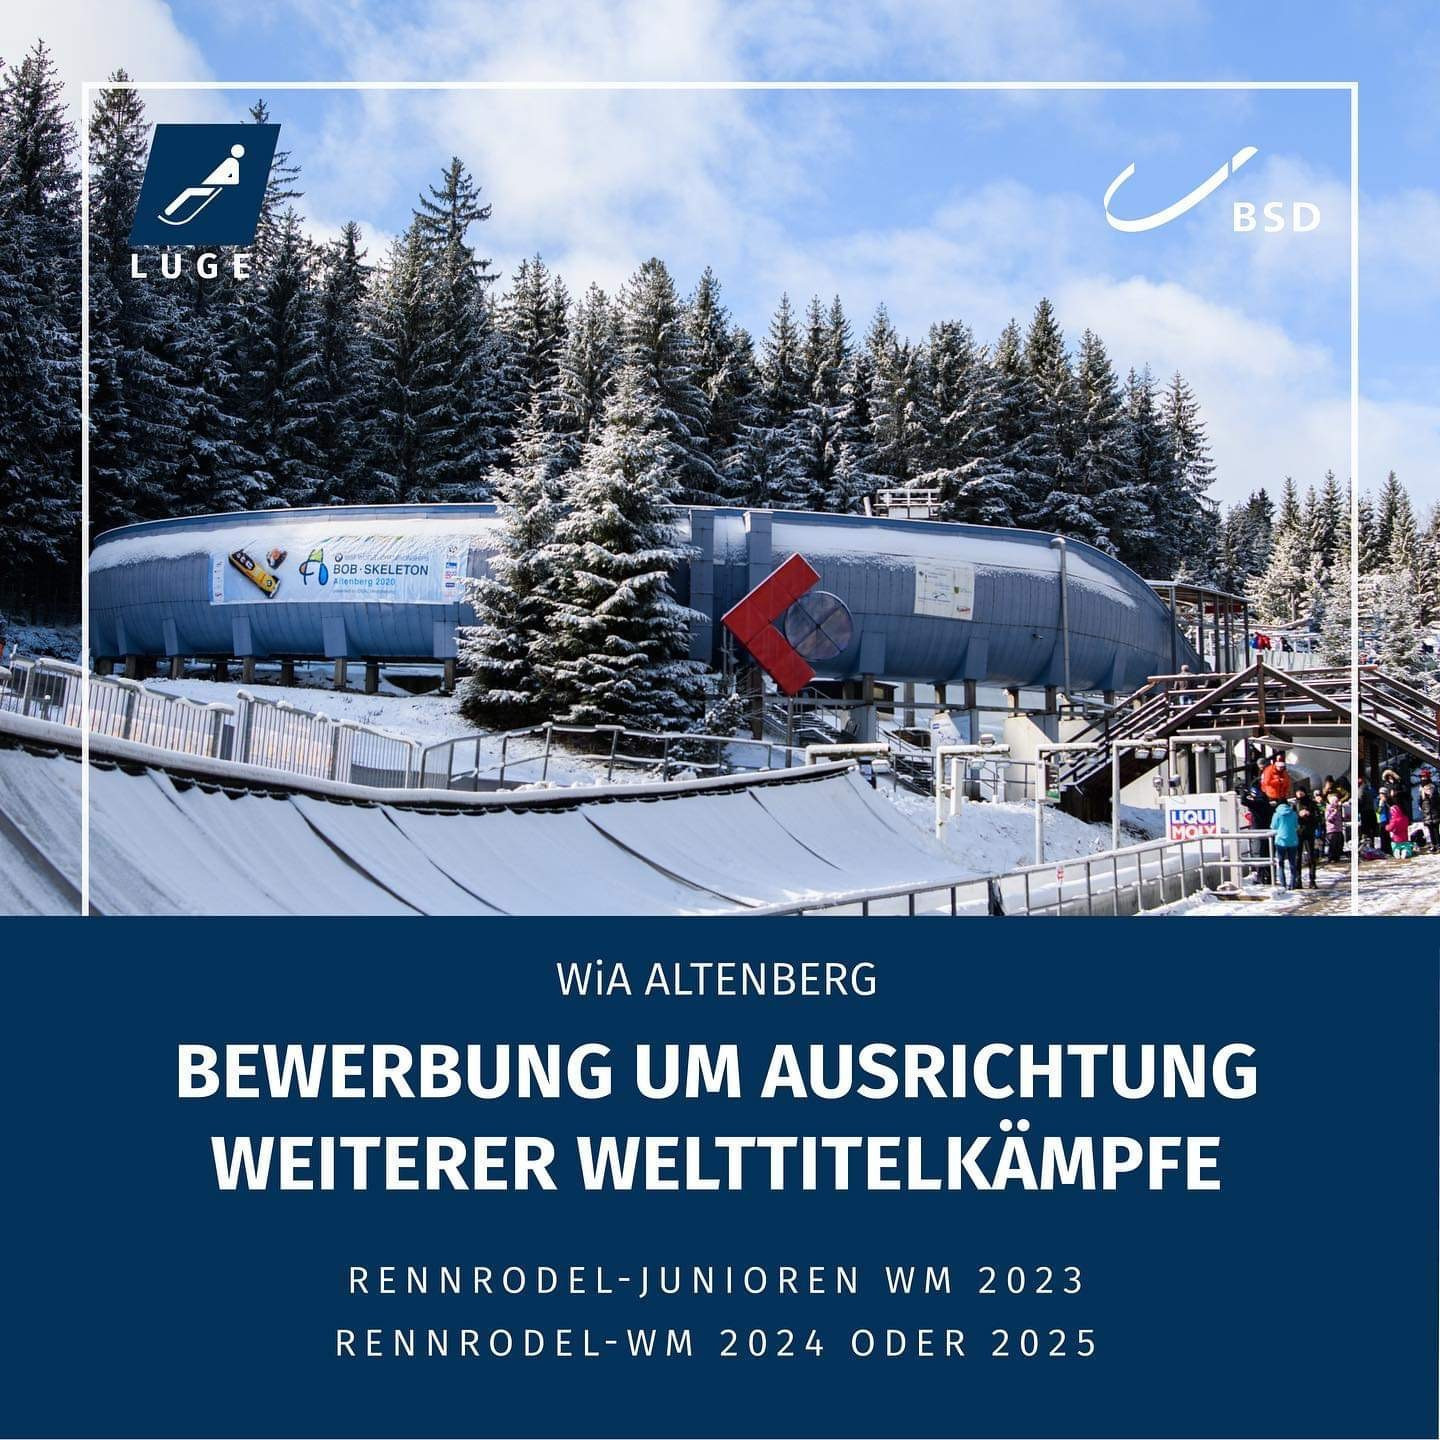 Altenberg to bid for Luge World Championships in 2024 or 2025